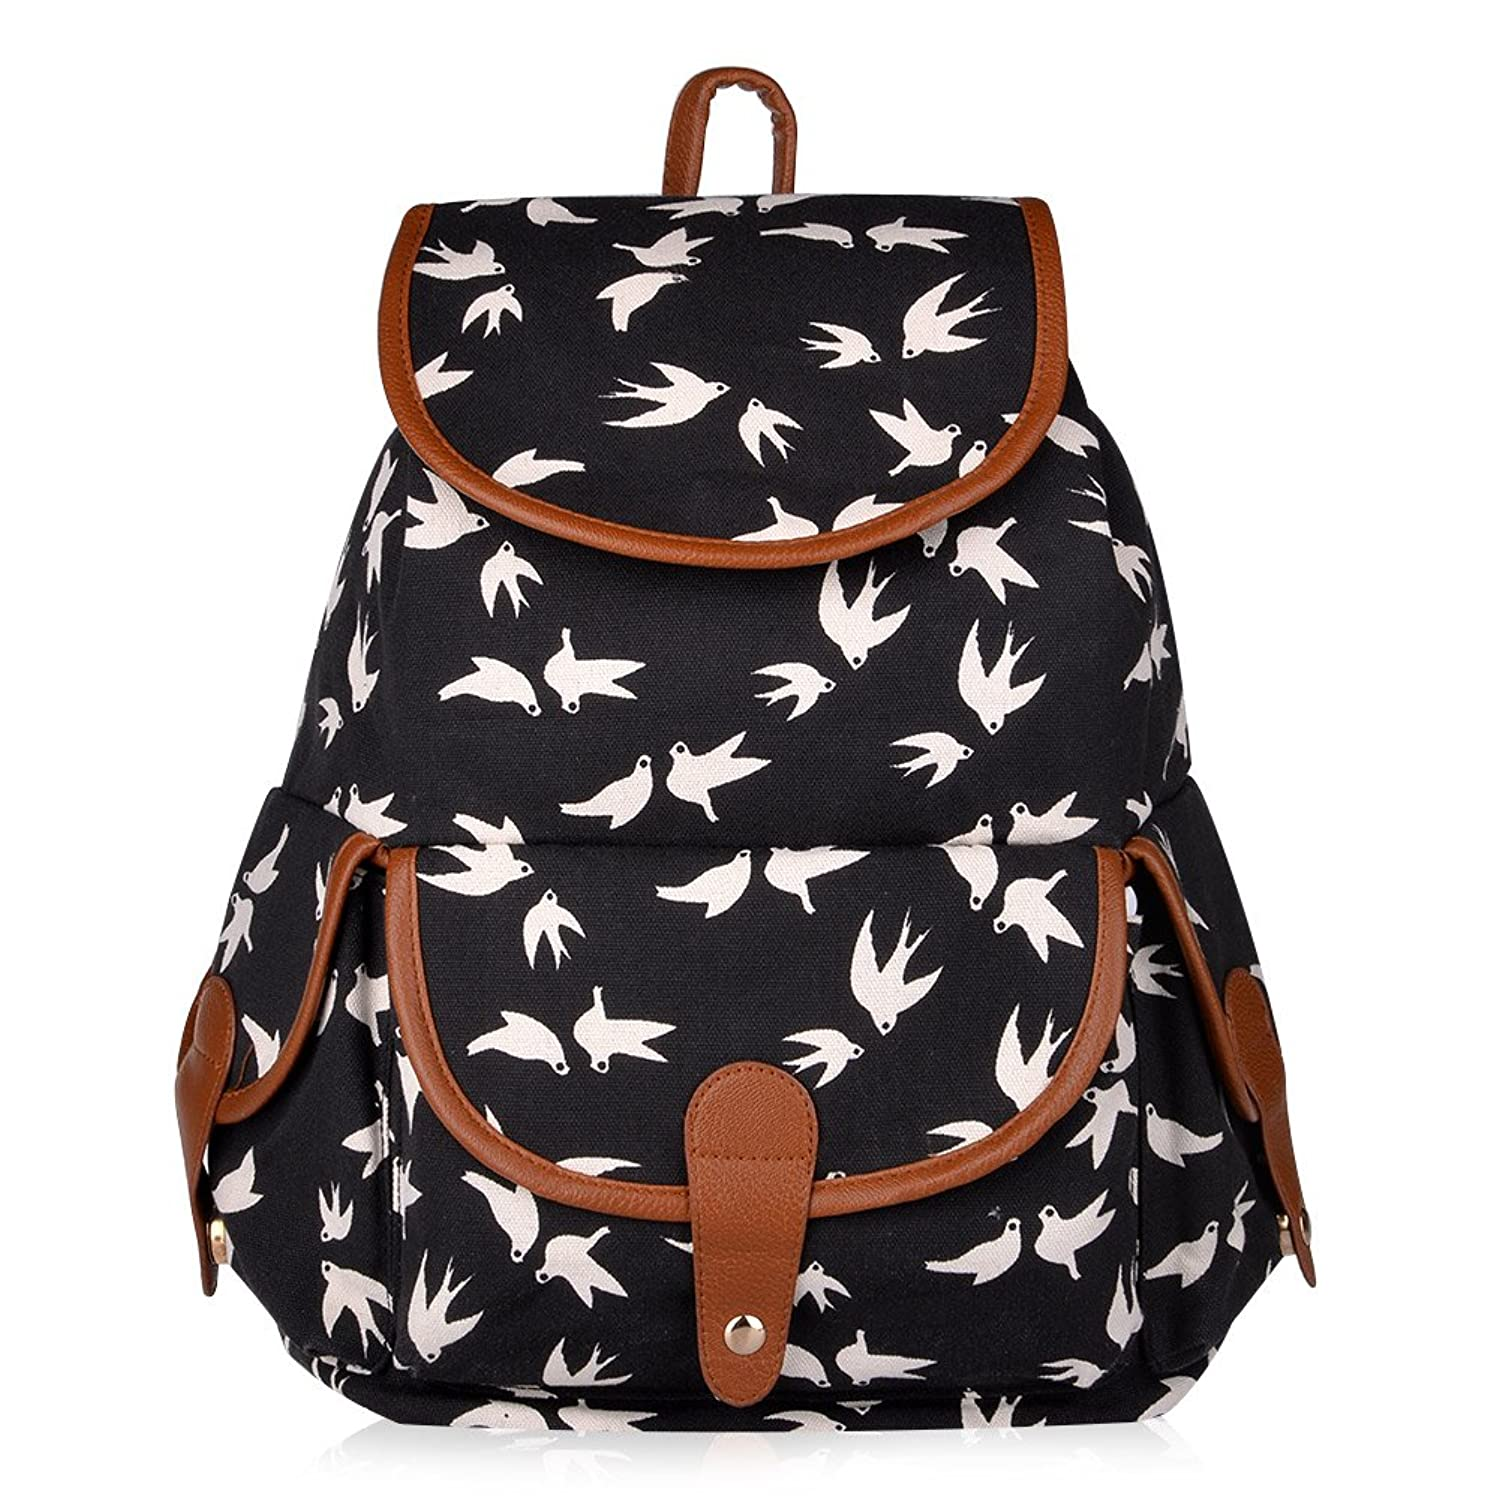 f4c3ad7b96a2 Vbiger Canvas Backpack for Women   Girls Boys Casual Book Bag Sports  Daypack (Birds)